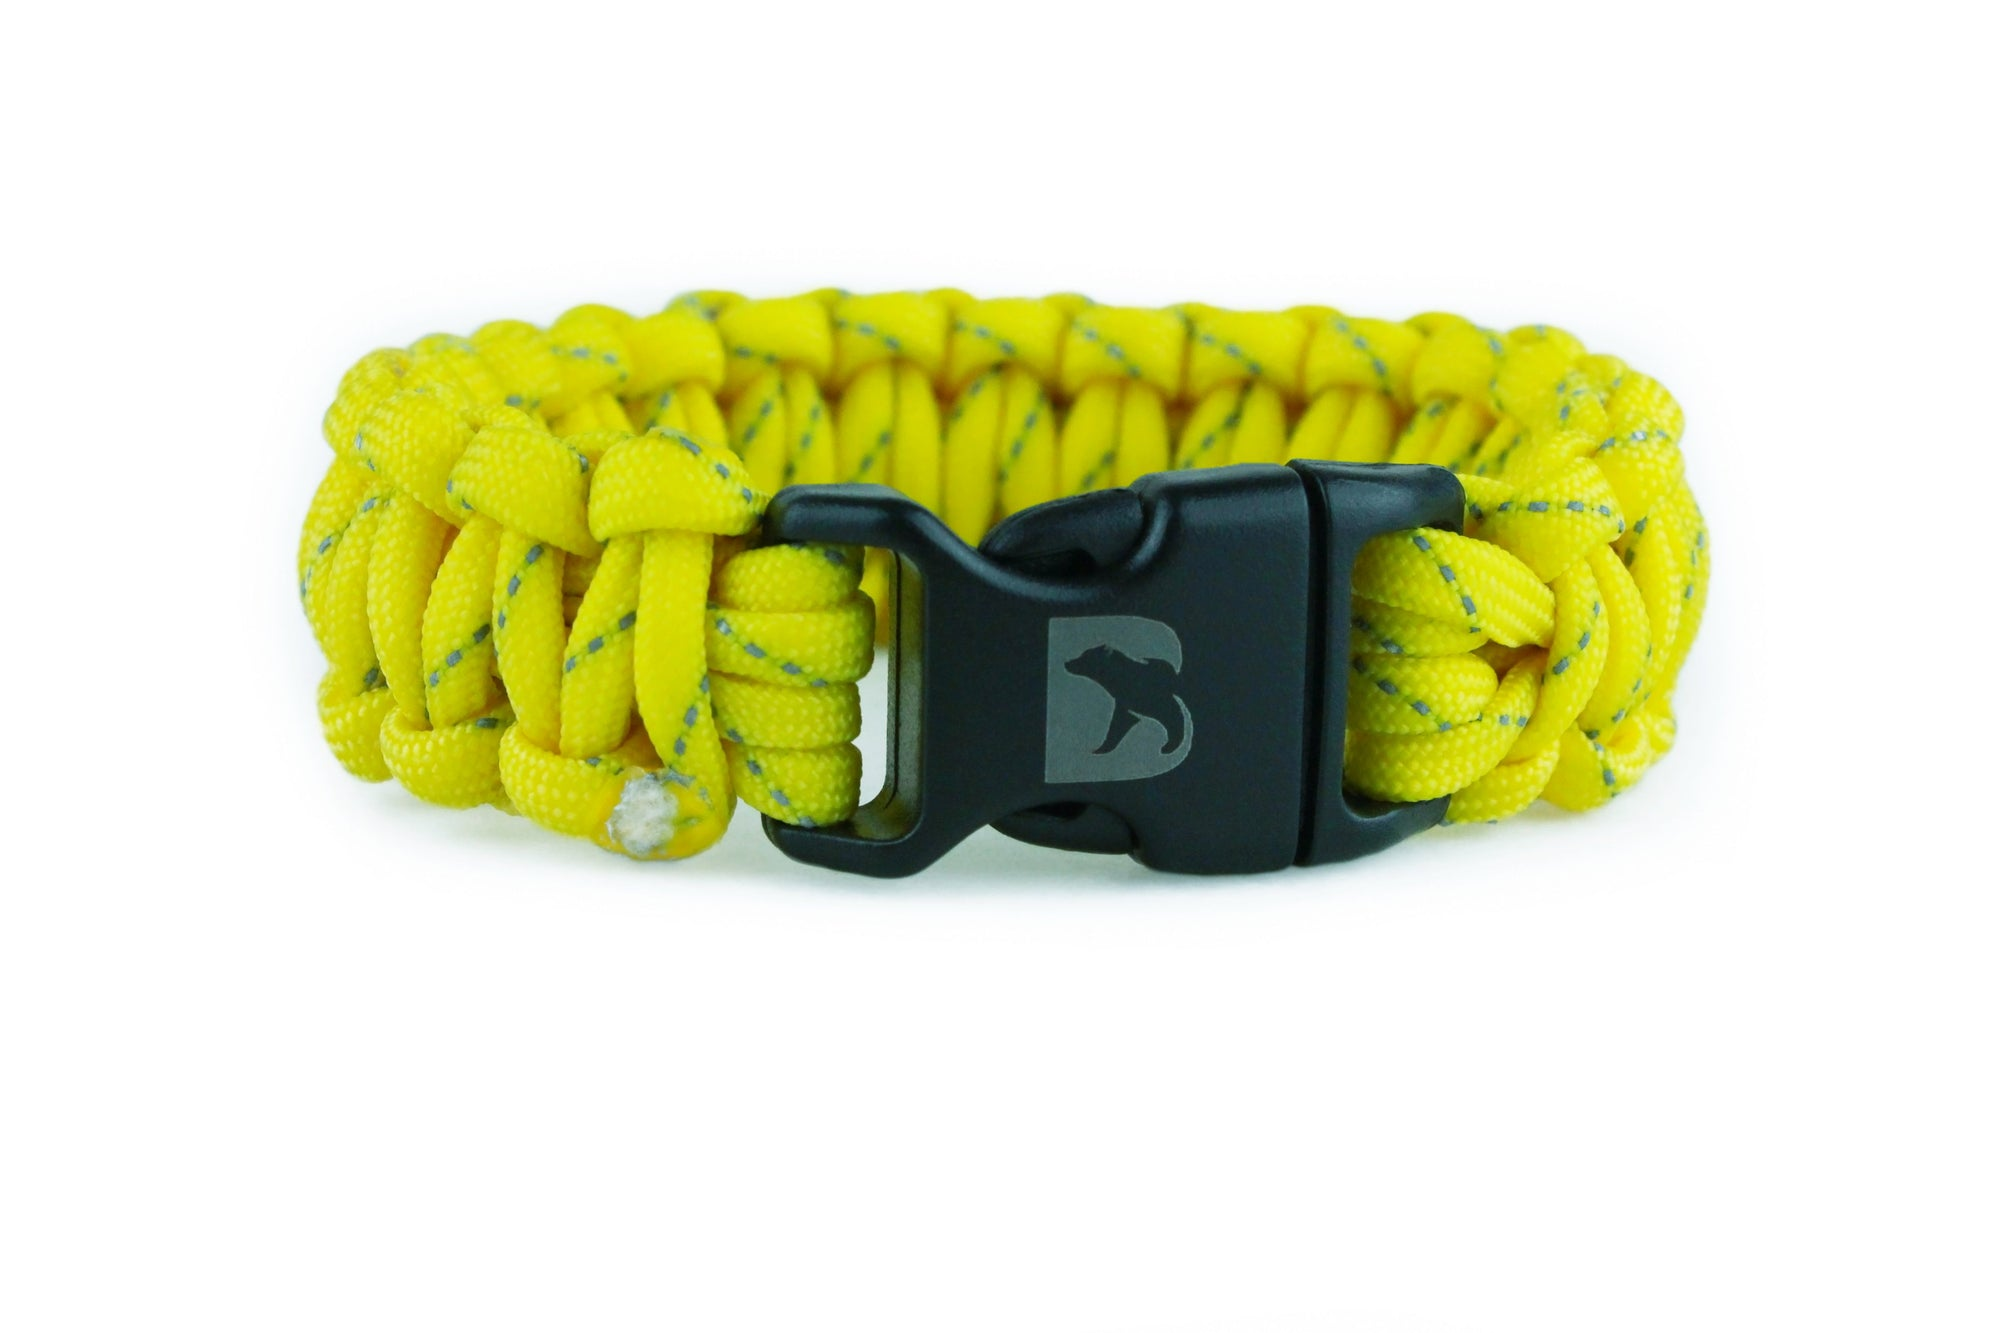 Reflective Yellow Paracord Bracelet-Paracord Bracelet-Bearbottom Clothing